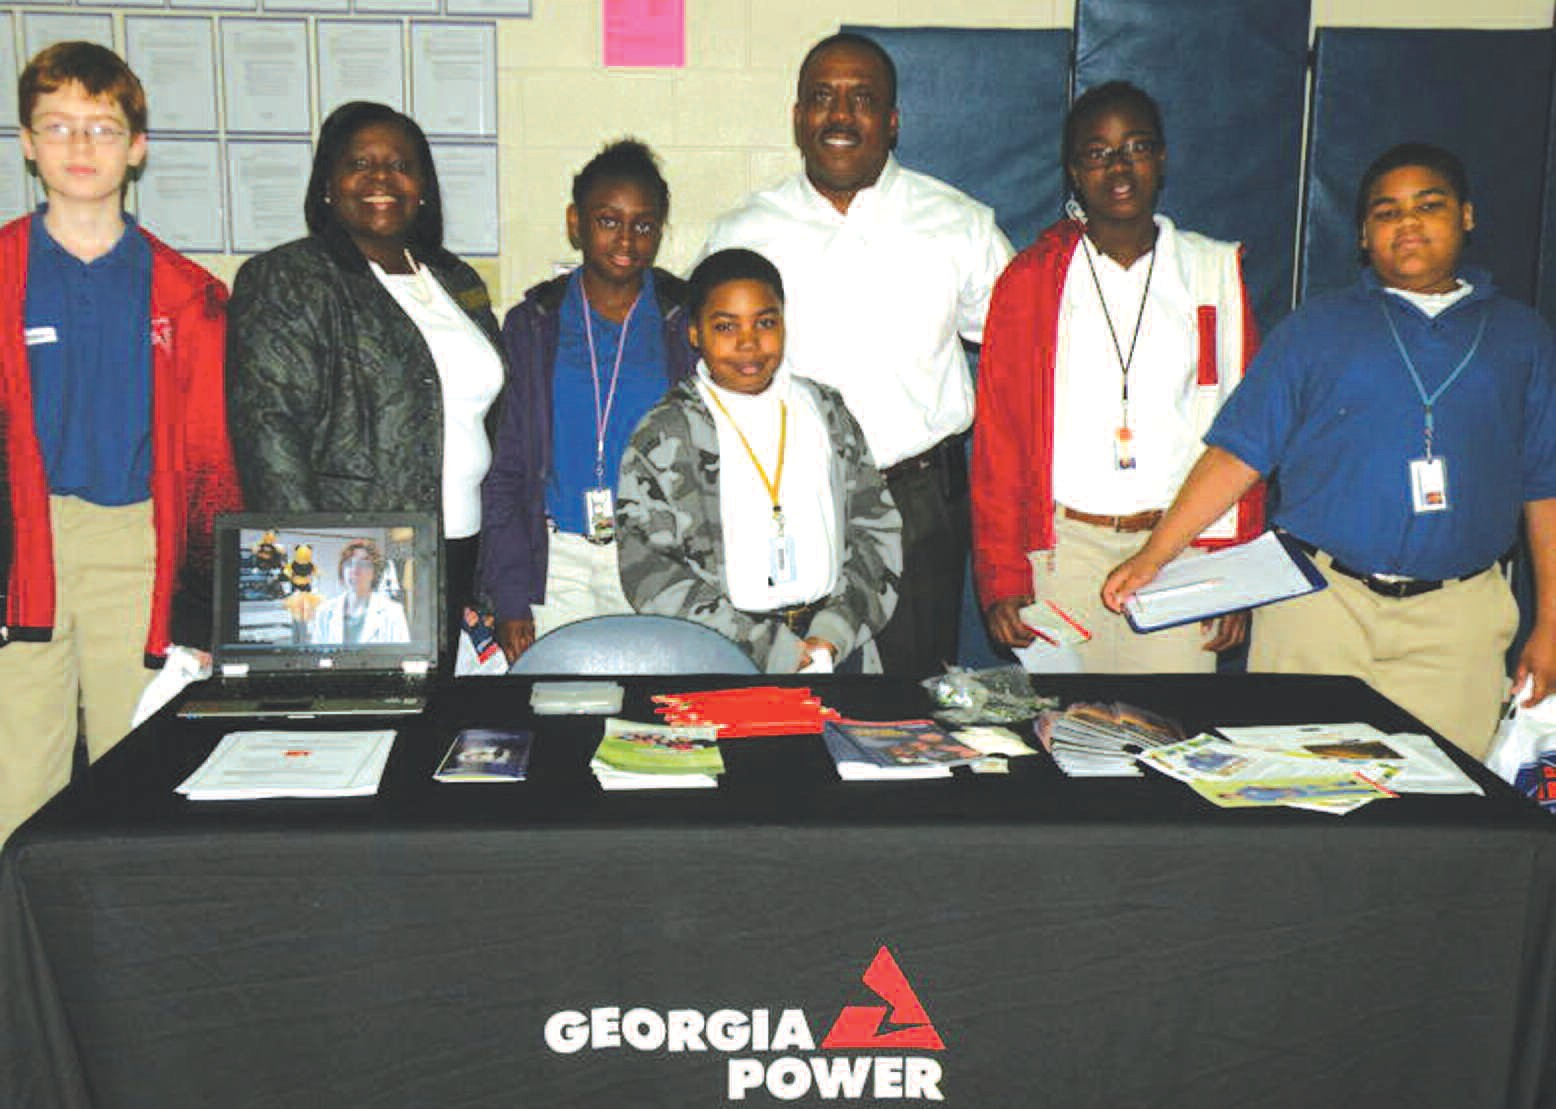 Georgia Power was among the representatives at the Annul Career Fair